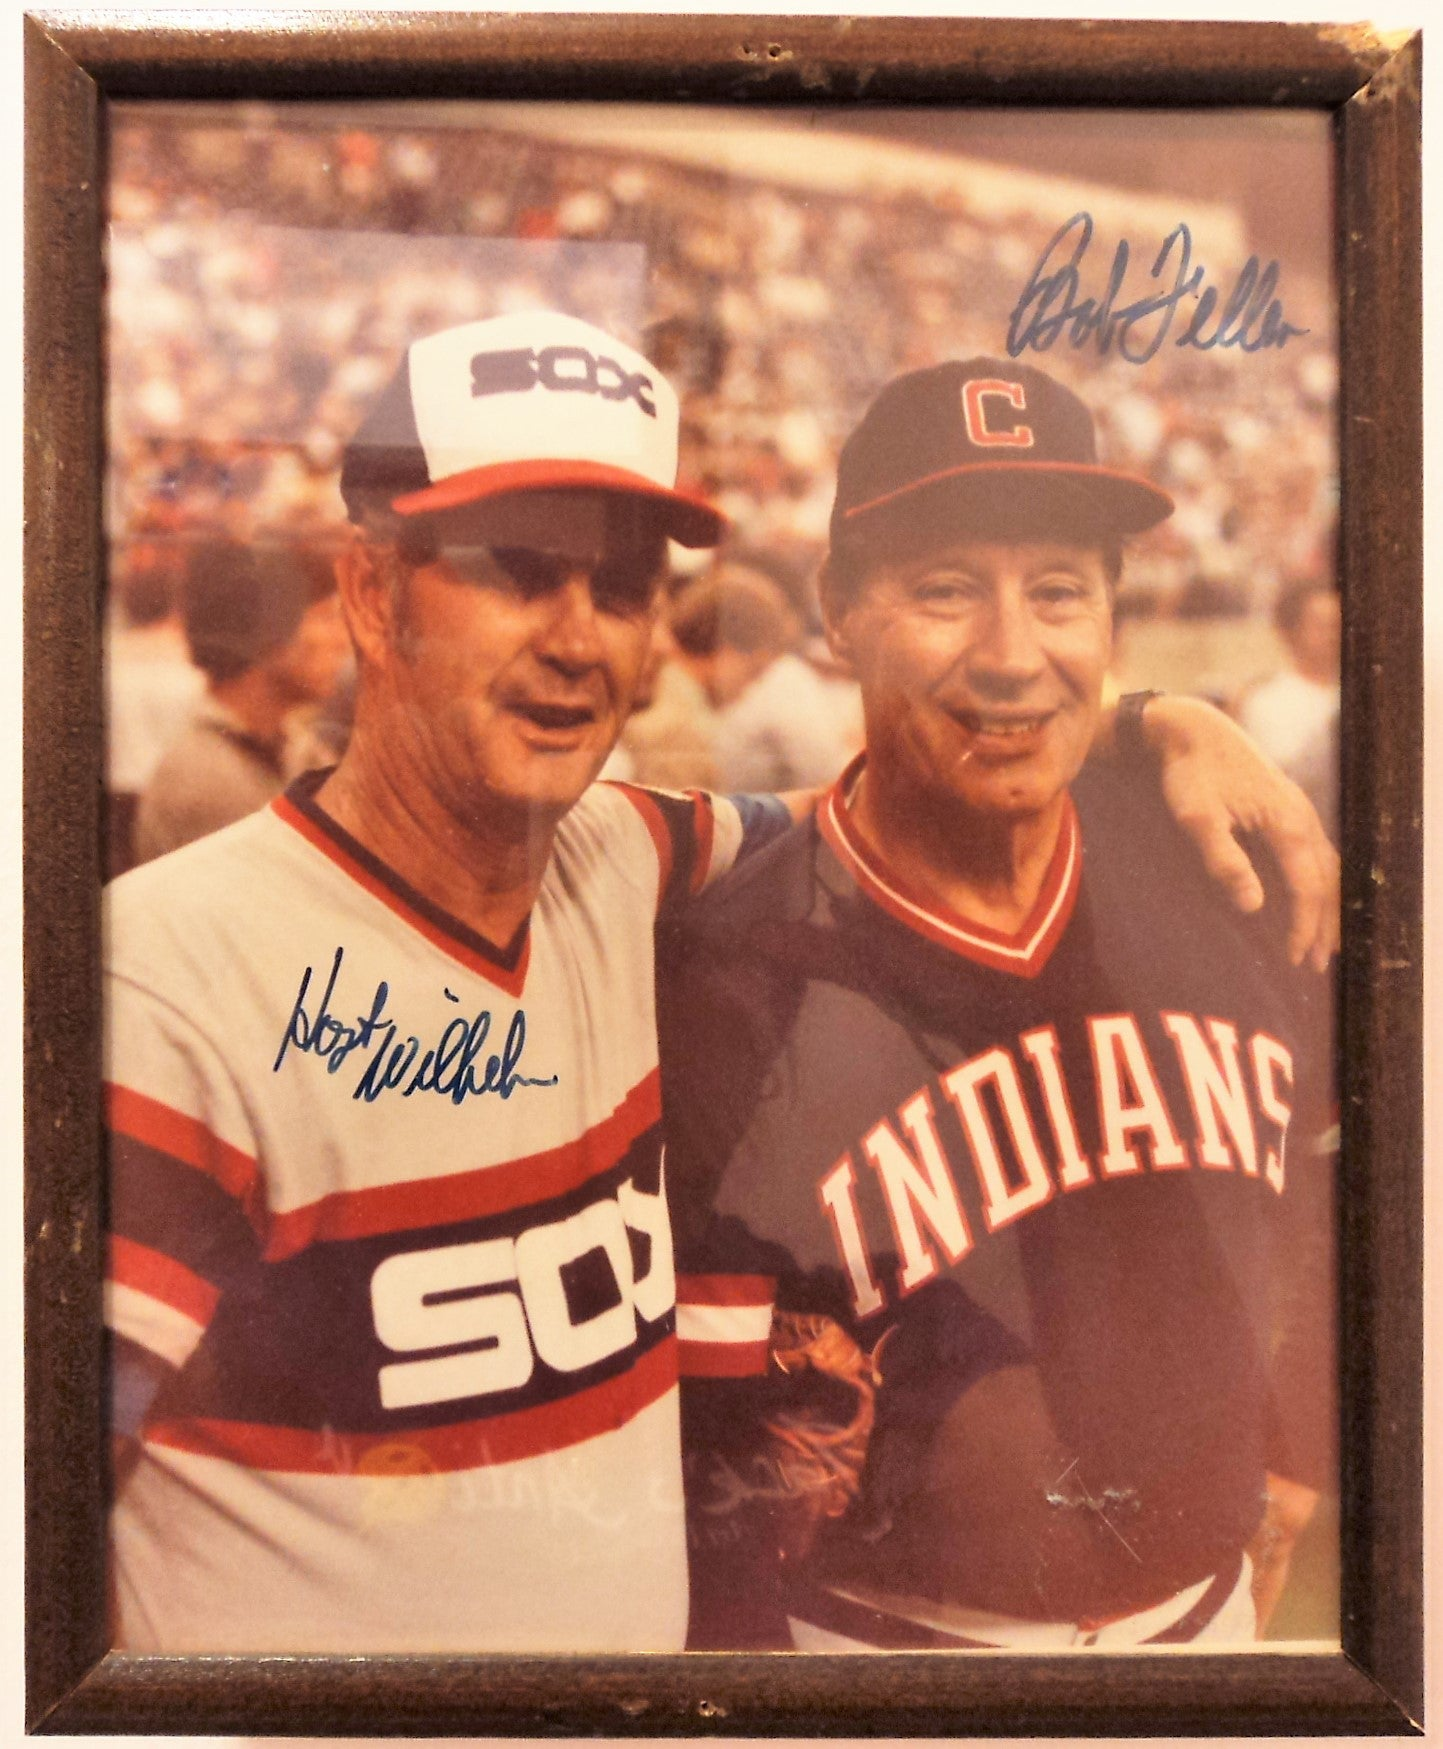 Autographed Baseball Photo of Hoyt Wilhelm and Bob Feller